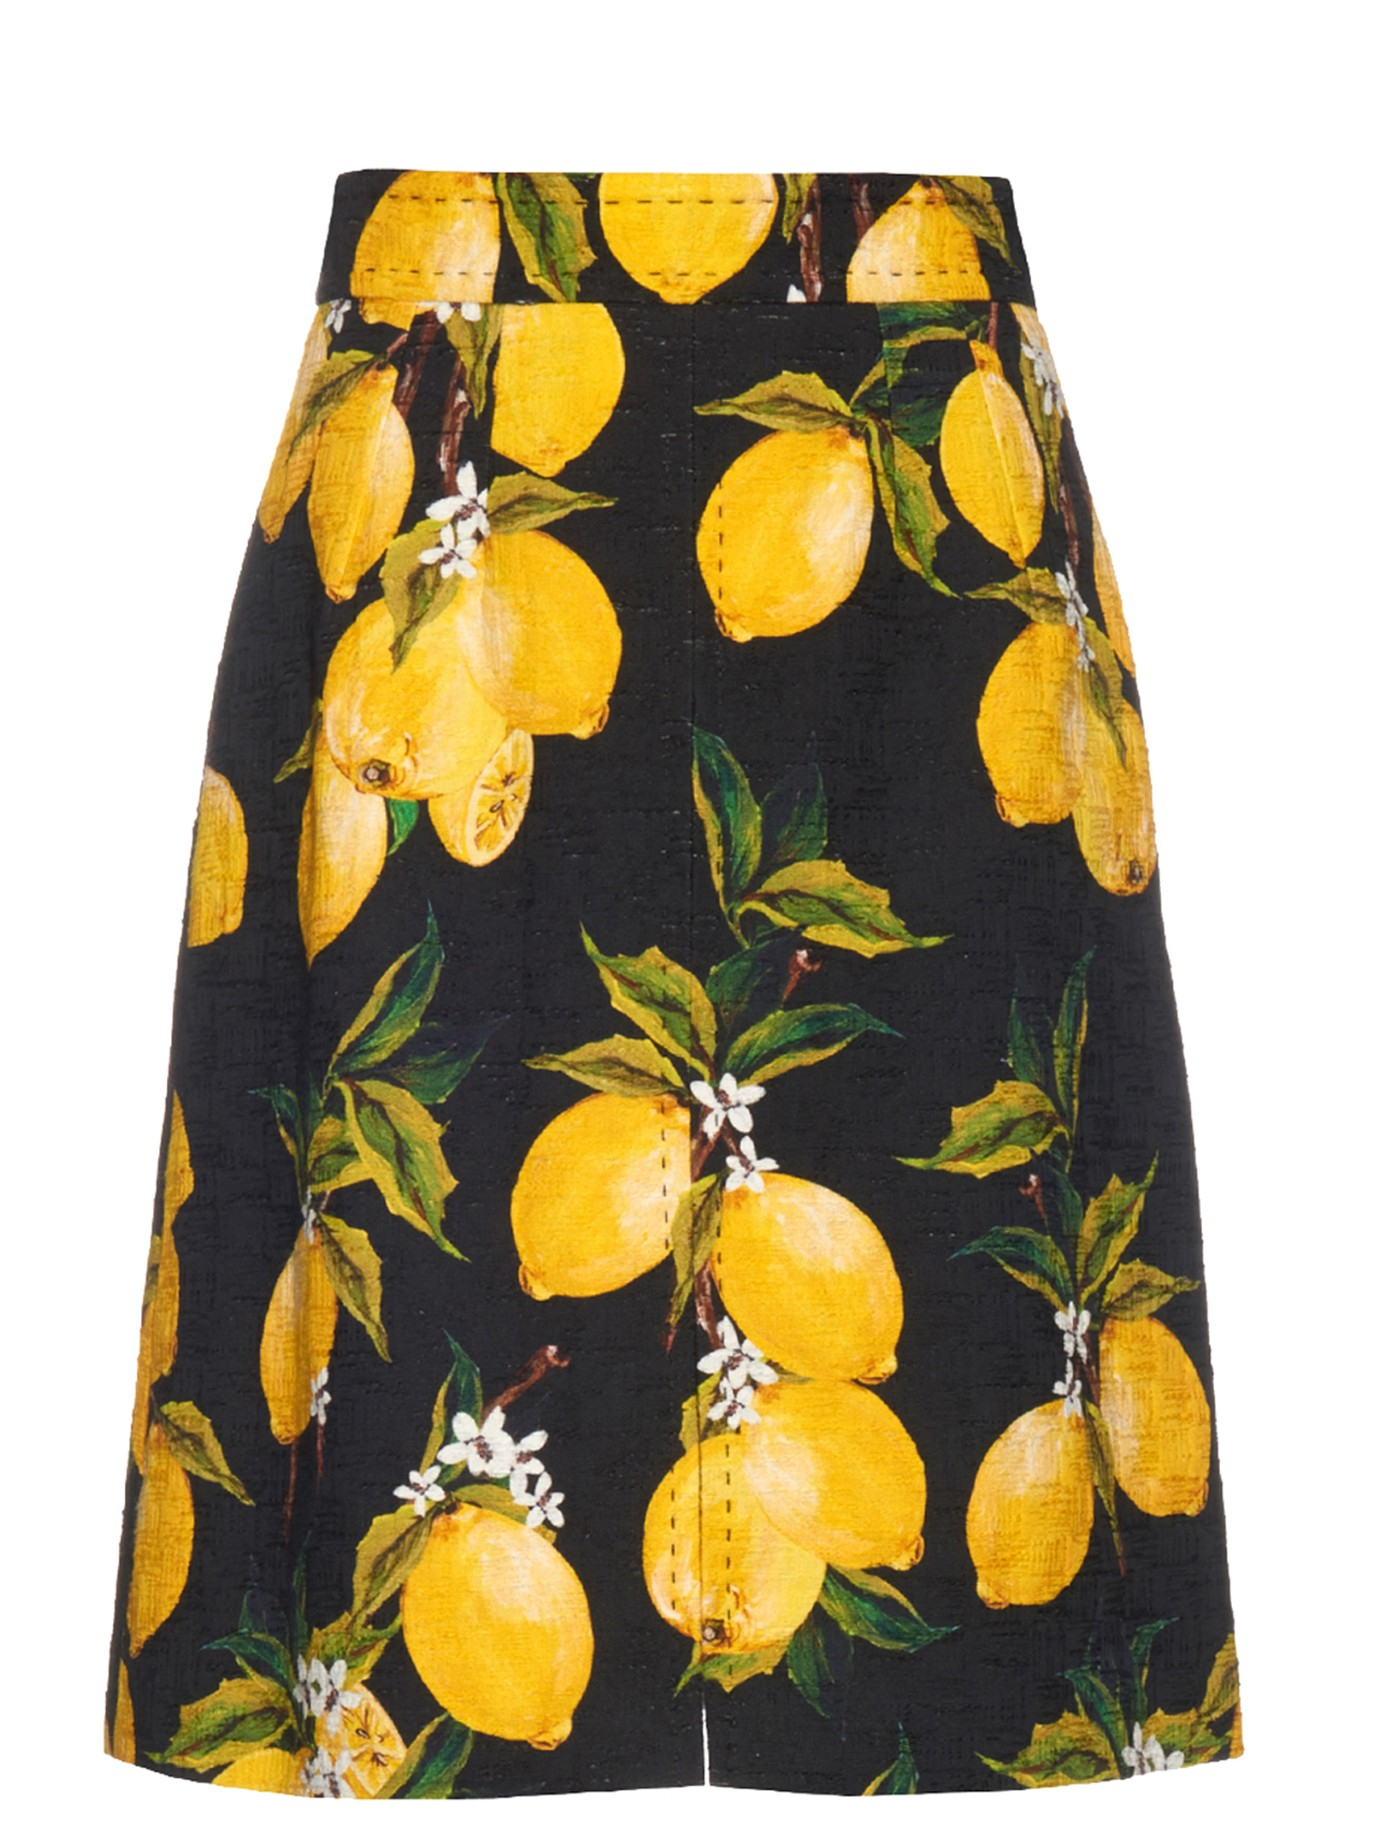 Lyst - Dolce   Gabbana Lemon-print A-line Skirt in Green 300f628aa856c